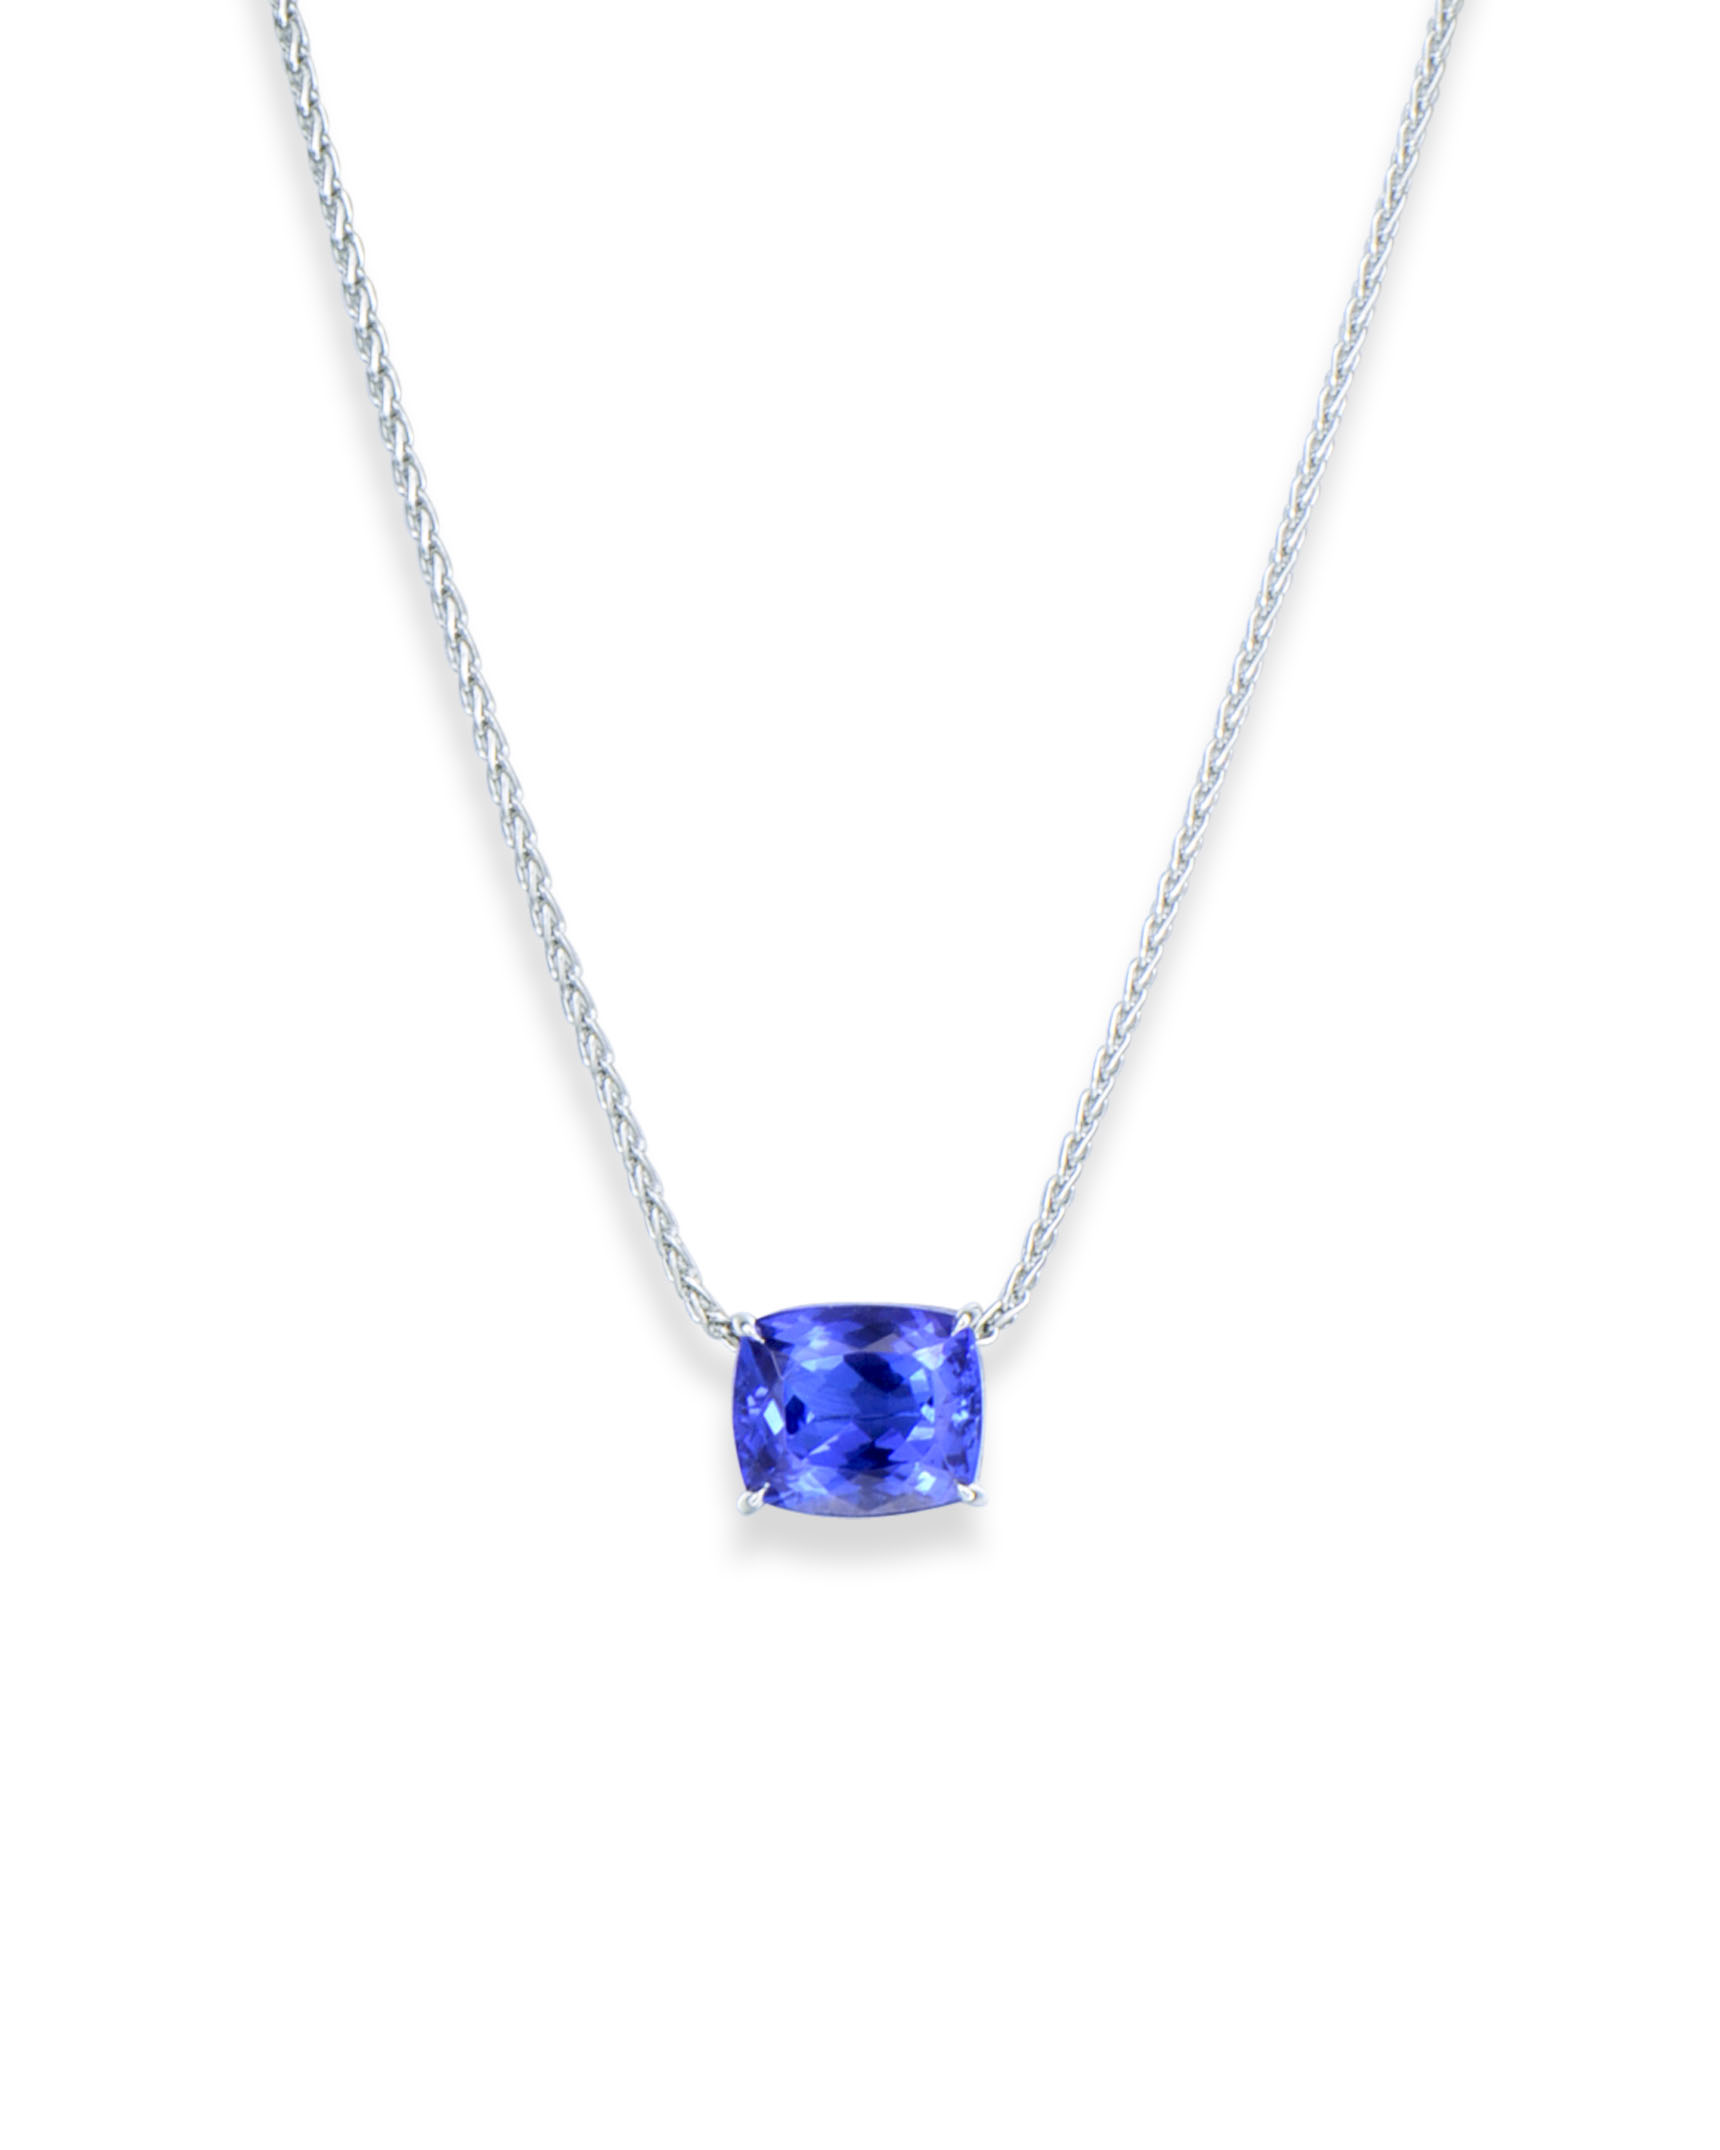 elegant silver pendants jewelry luxury in gemstone trendy blue pendant natural necklace women from fruit gift tanzanite item